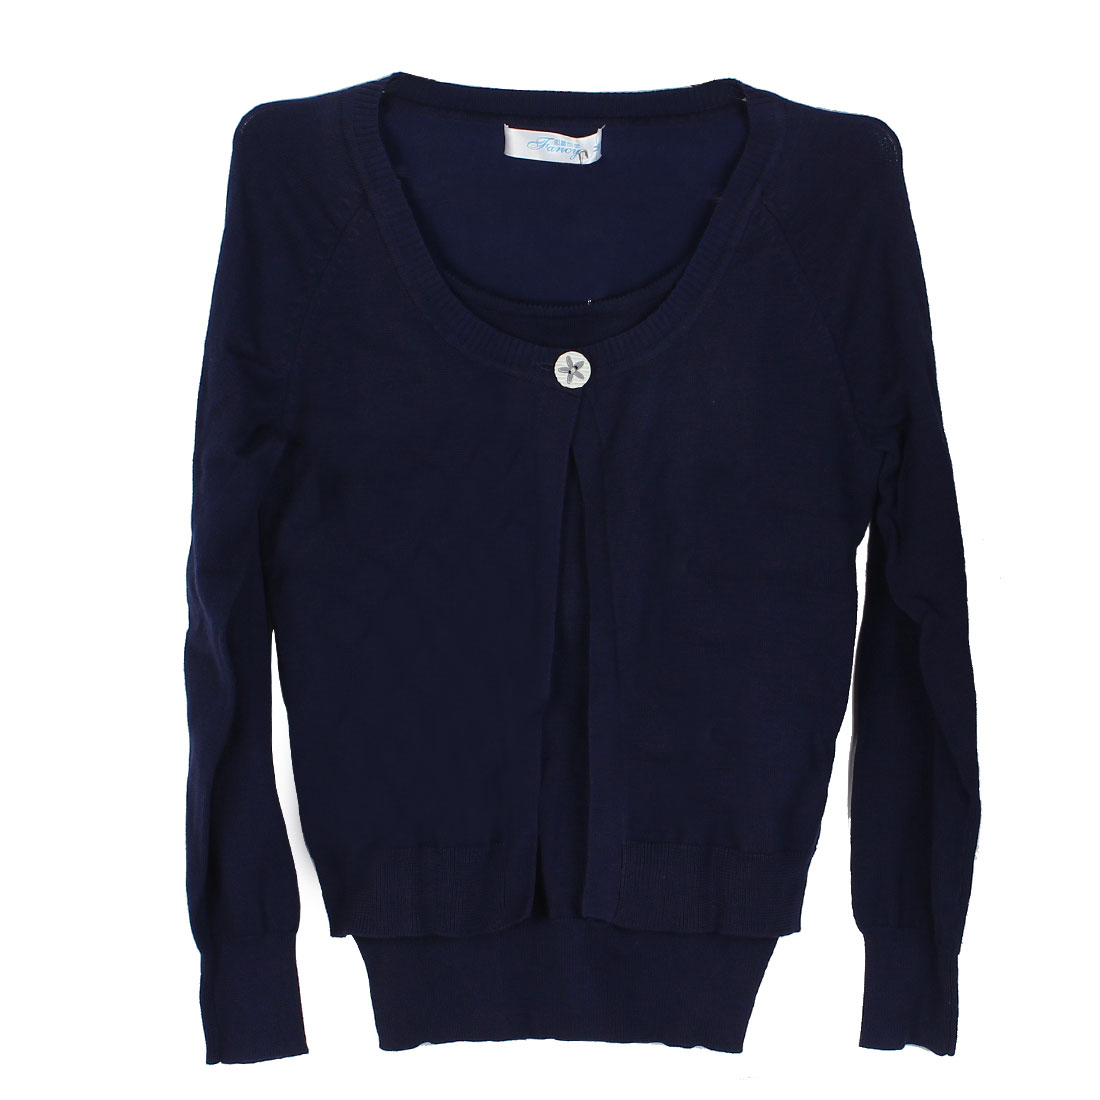 Long Sleeves Open Front Size S Navy Blue Knitted Sweater for Ladies